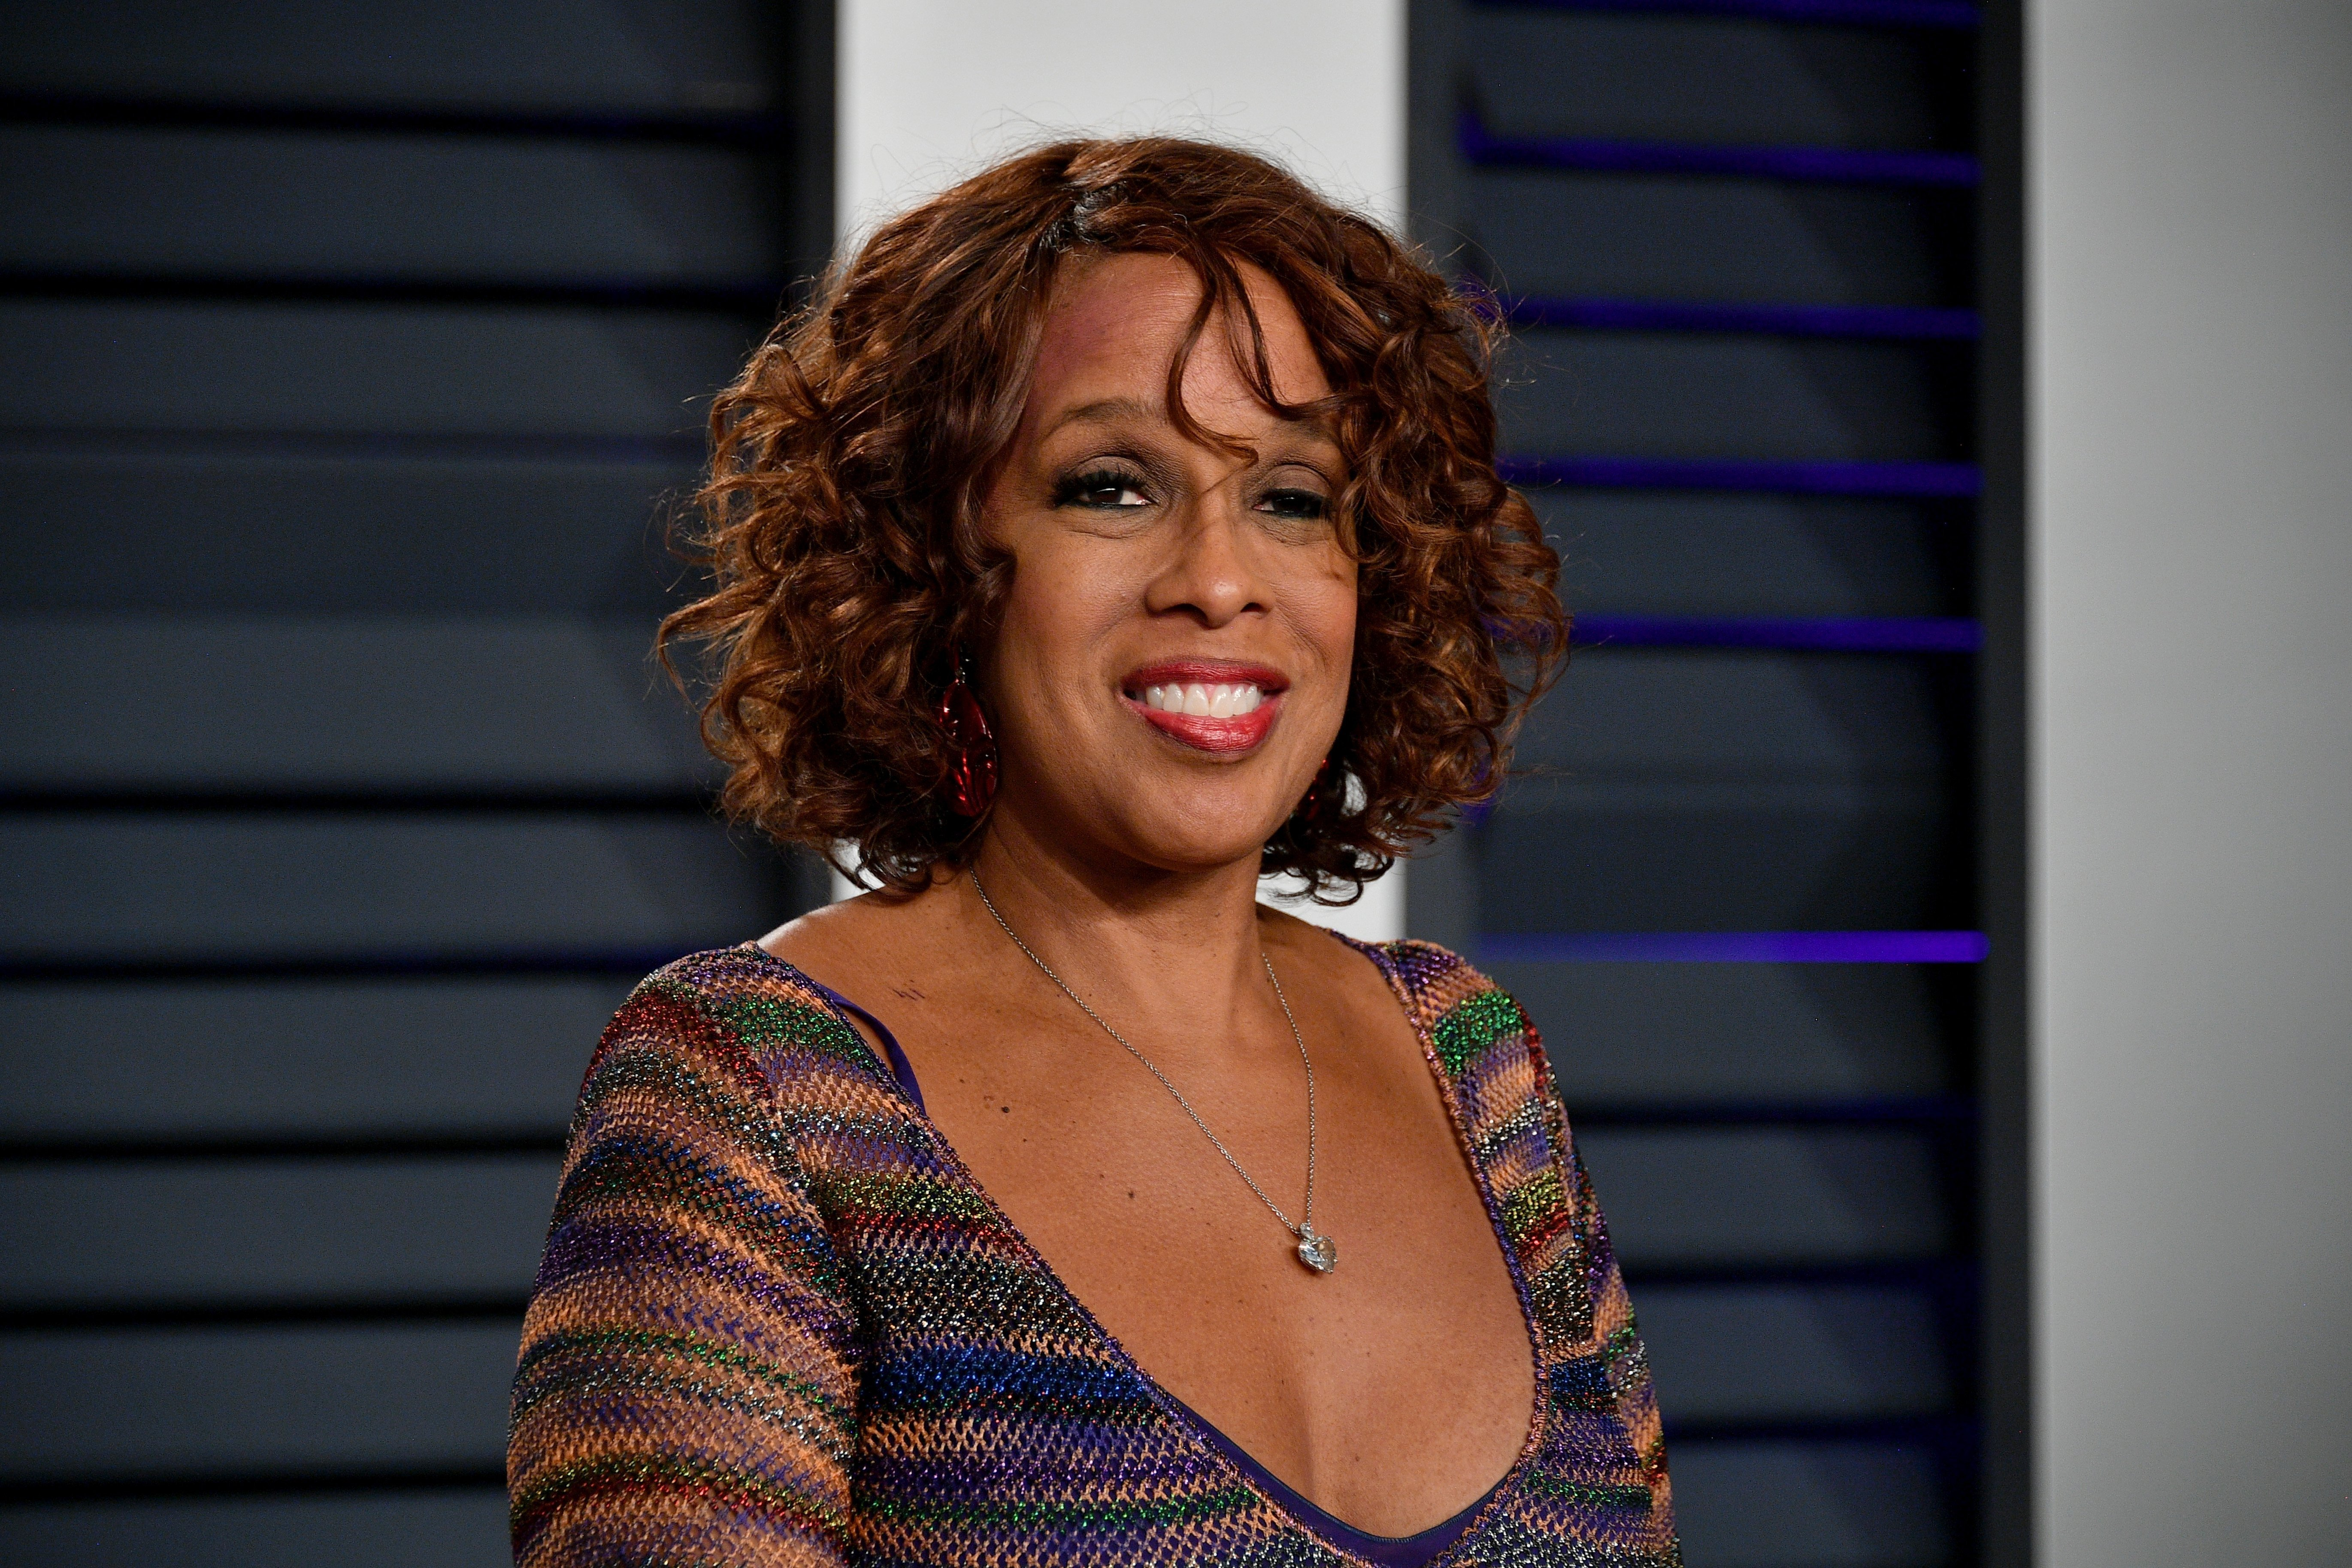 Gayle King at the 2019 Vanity Fair Oscars party. | Photo: Getty Images